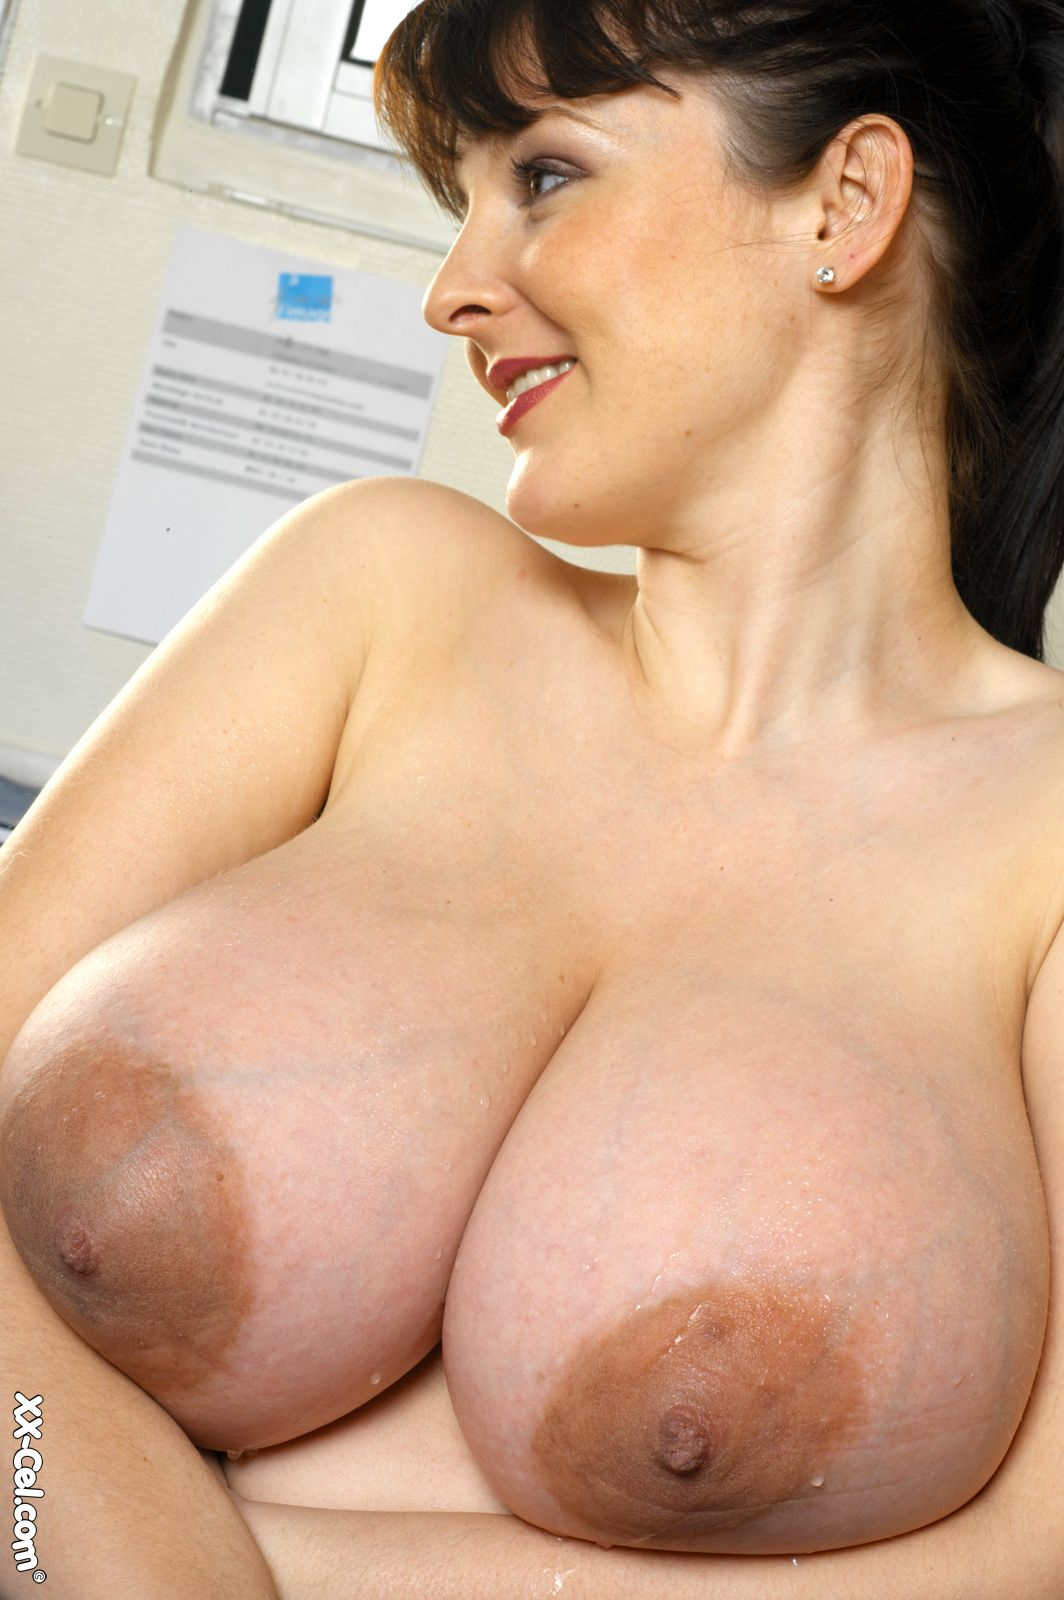 NAKED NOW NIPPLES BREAST BIG LARGE